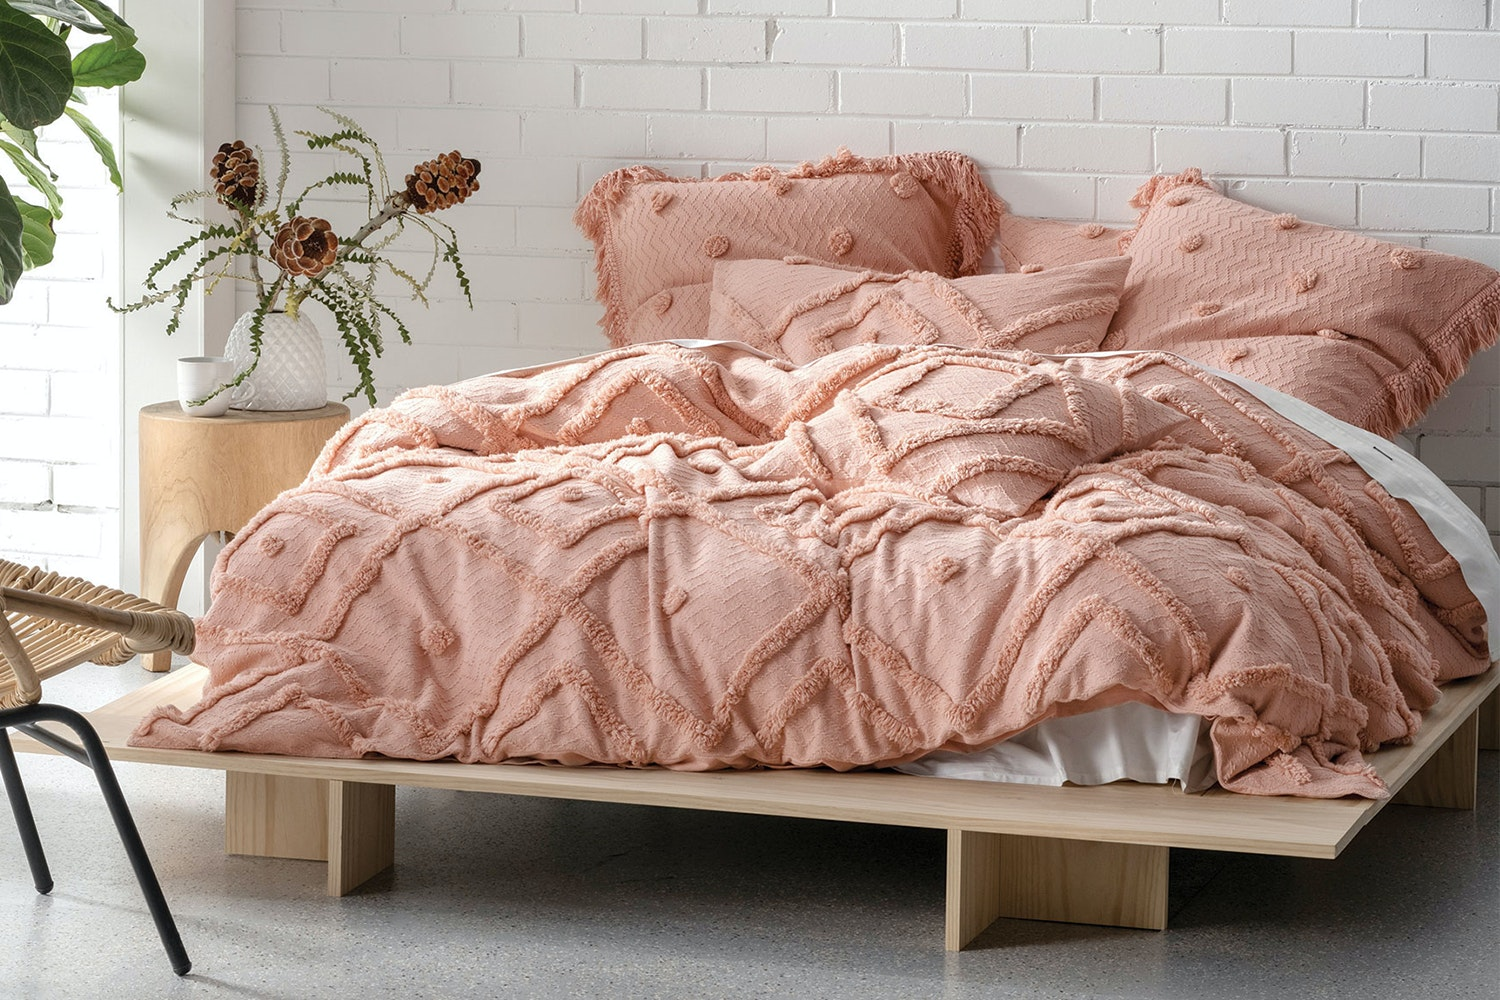 Adalyn Peach Duvet Cover Set by Savona